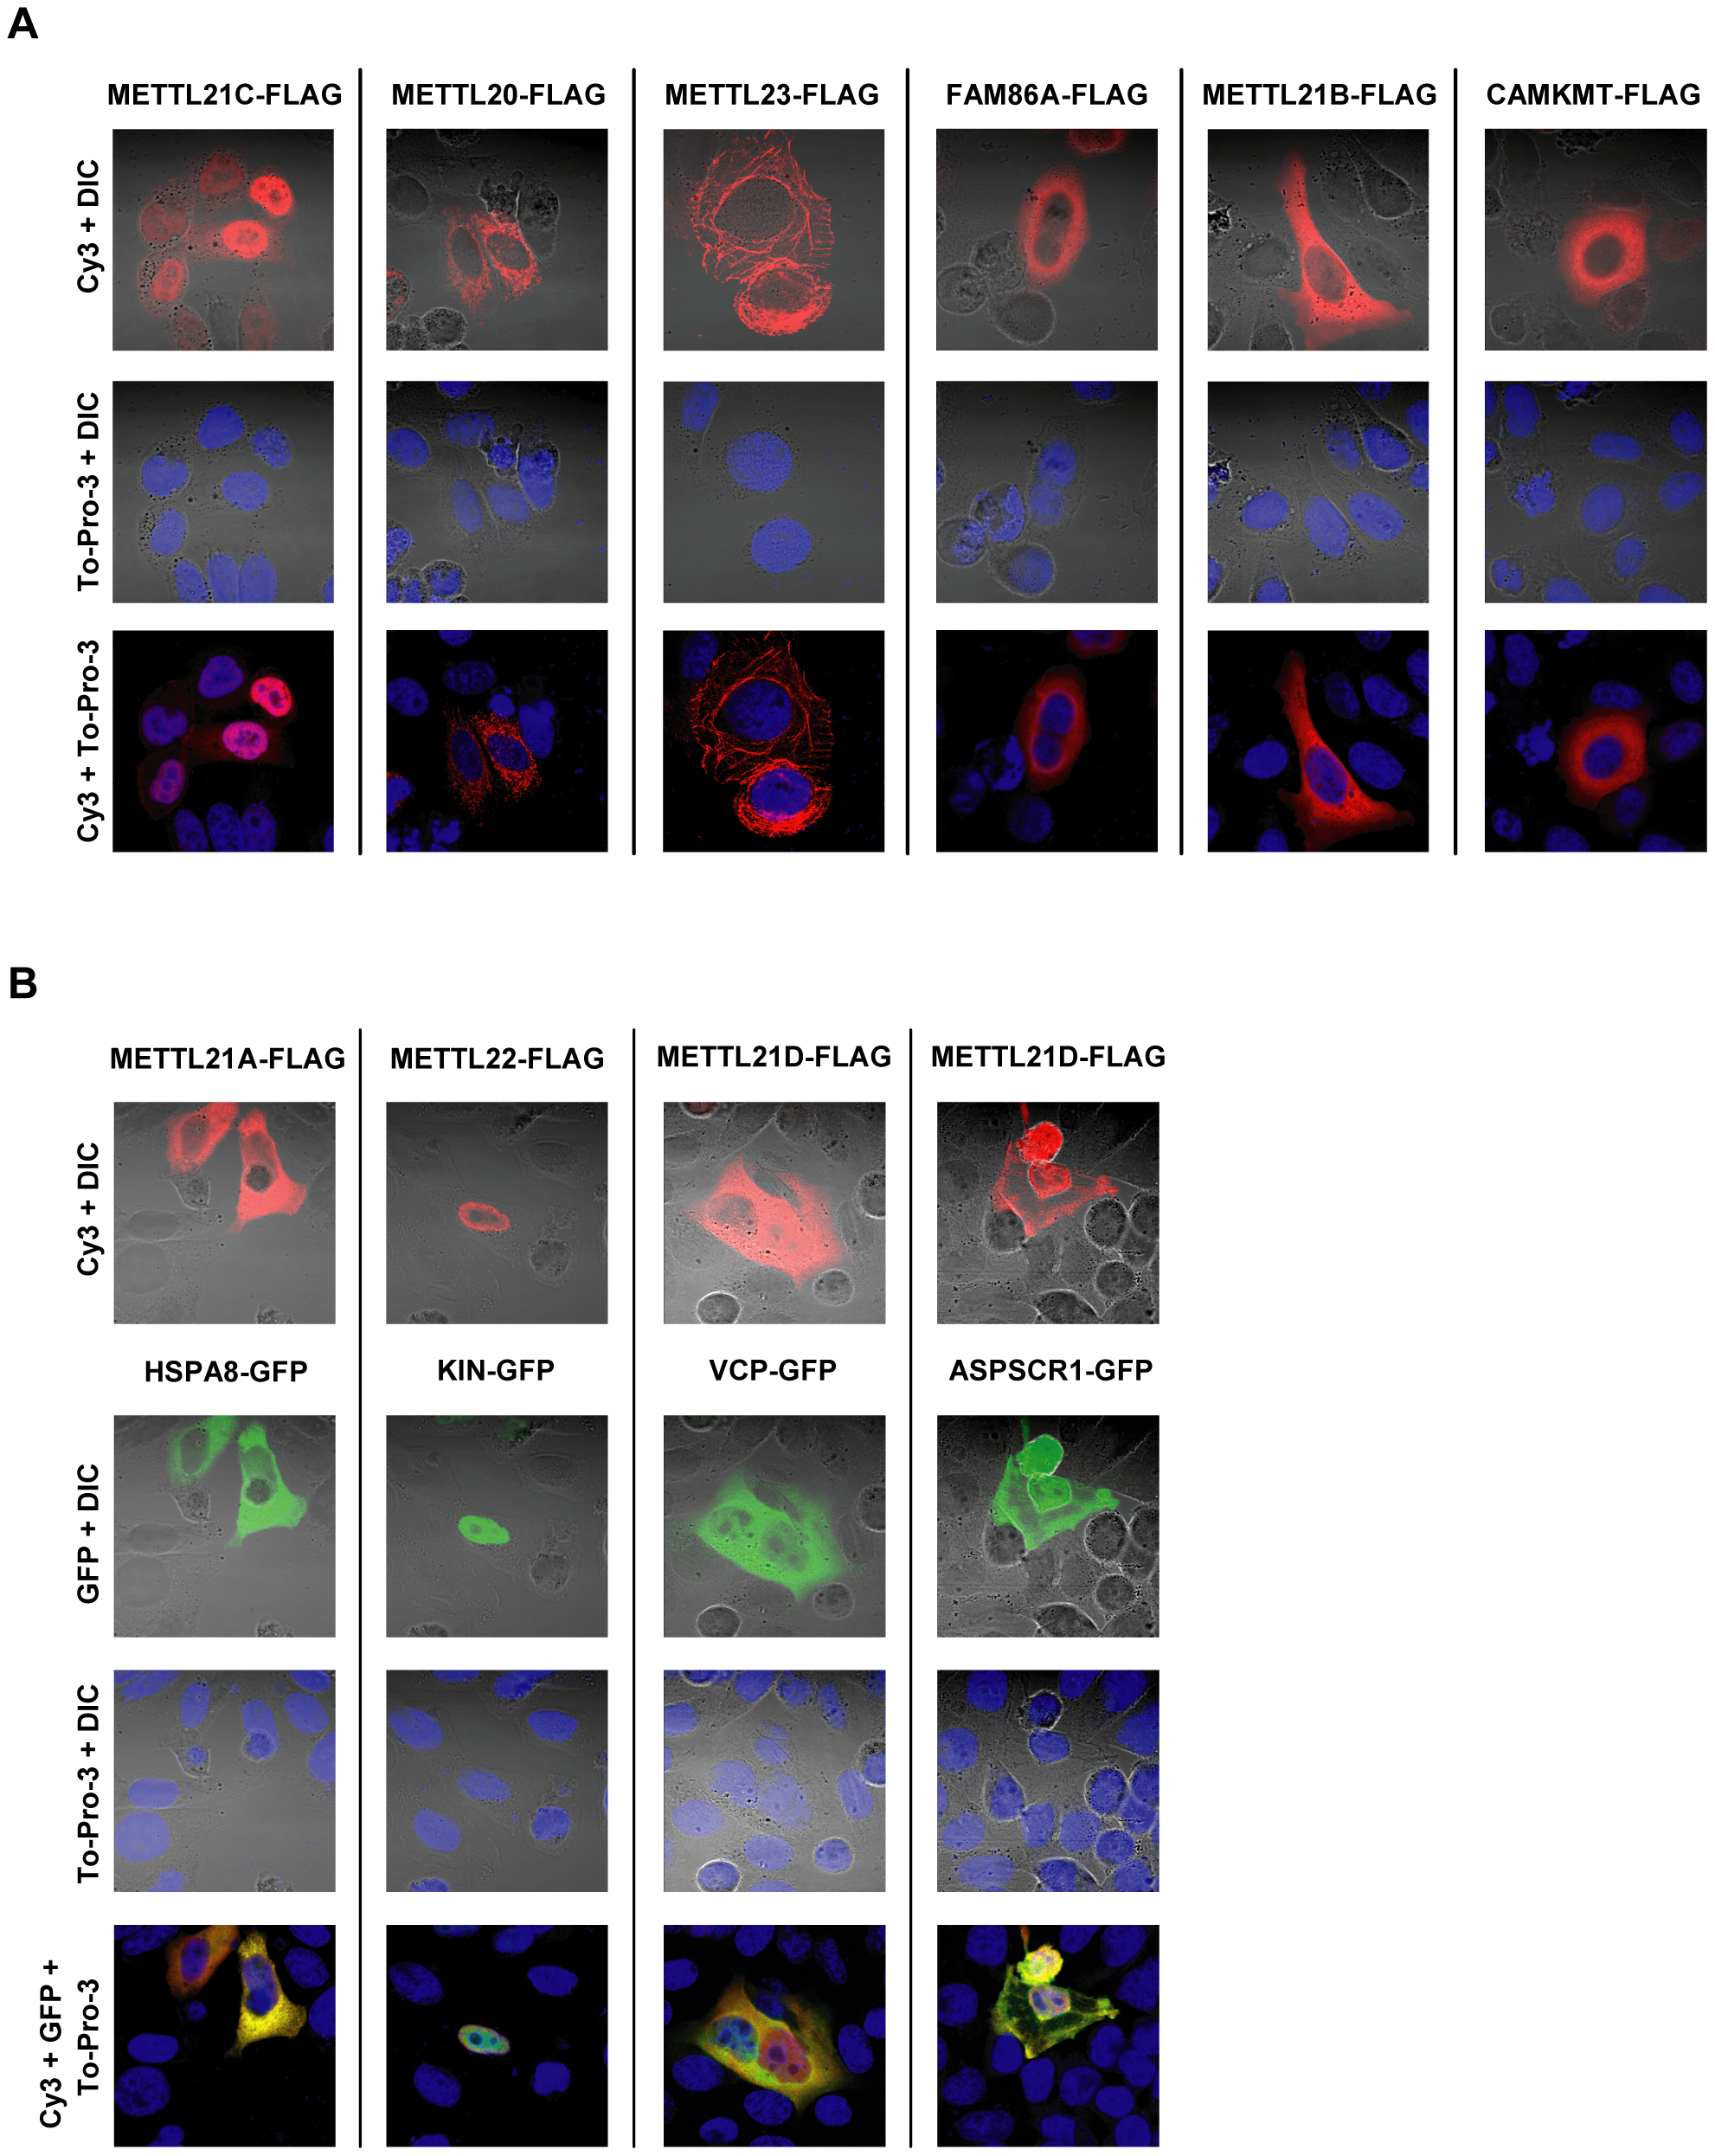 Intracellular distribution of putative methyltransferases and colocalization with identified substrates as shown by immunofluorescence.